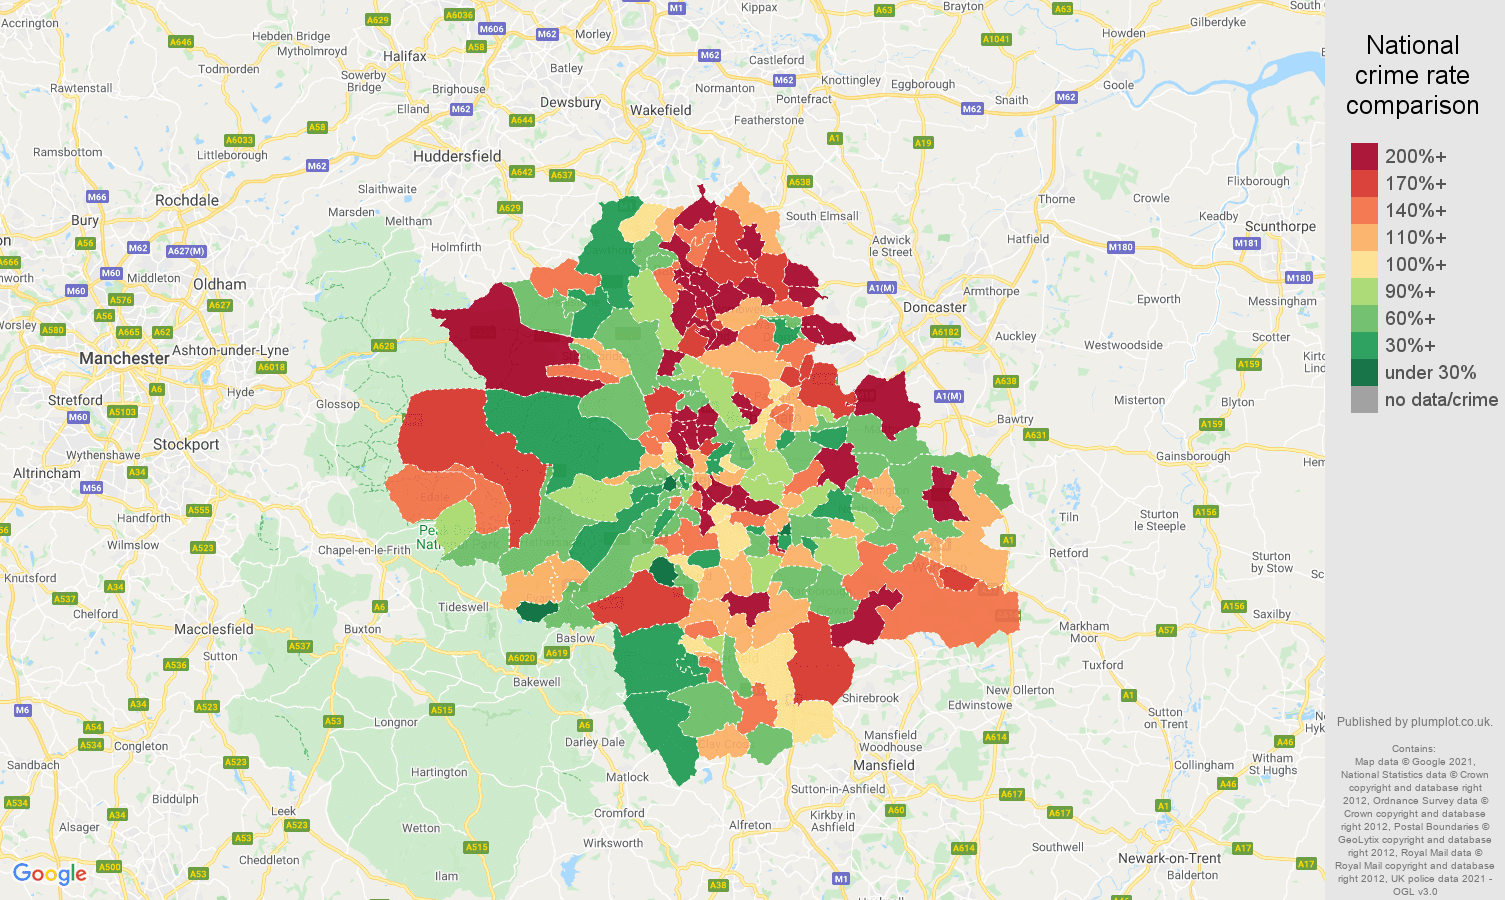 Sheffield criminal damage and arson crime rate comparison map